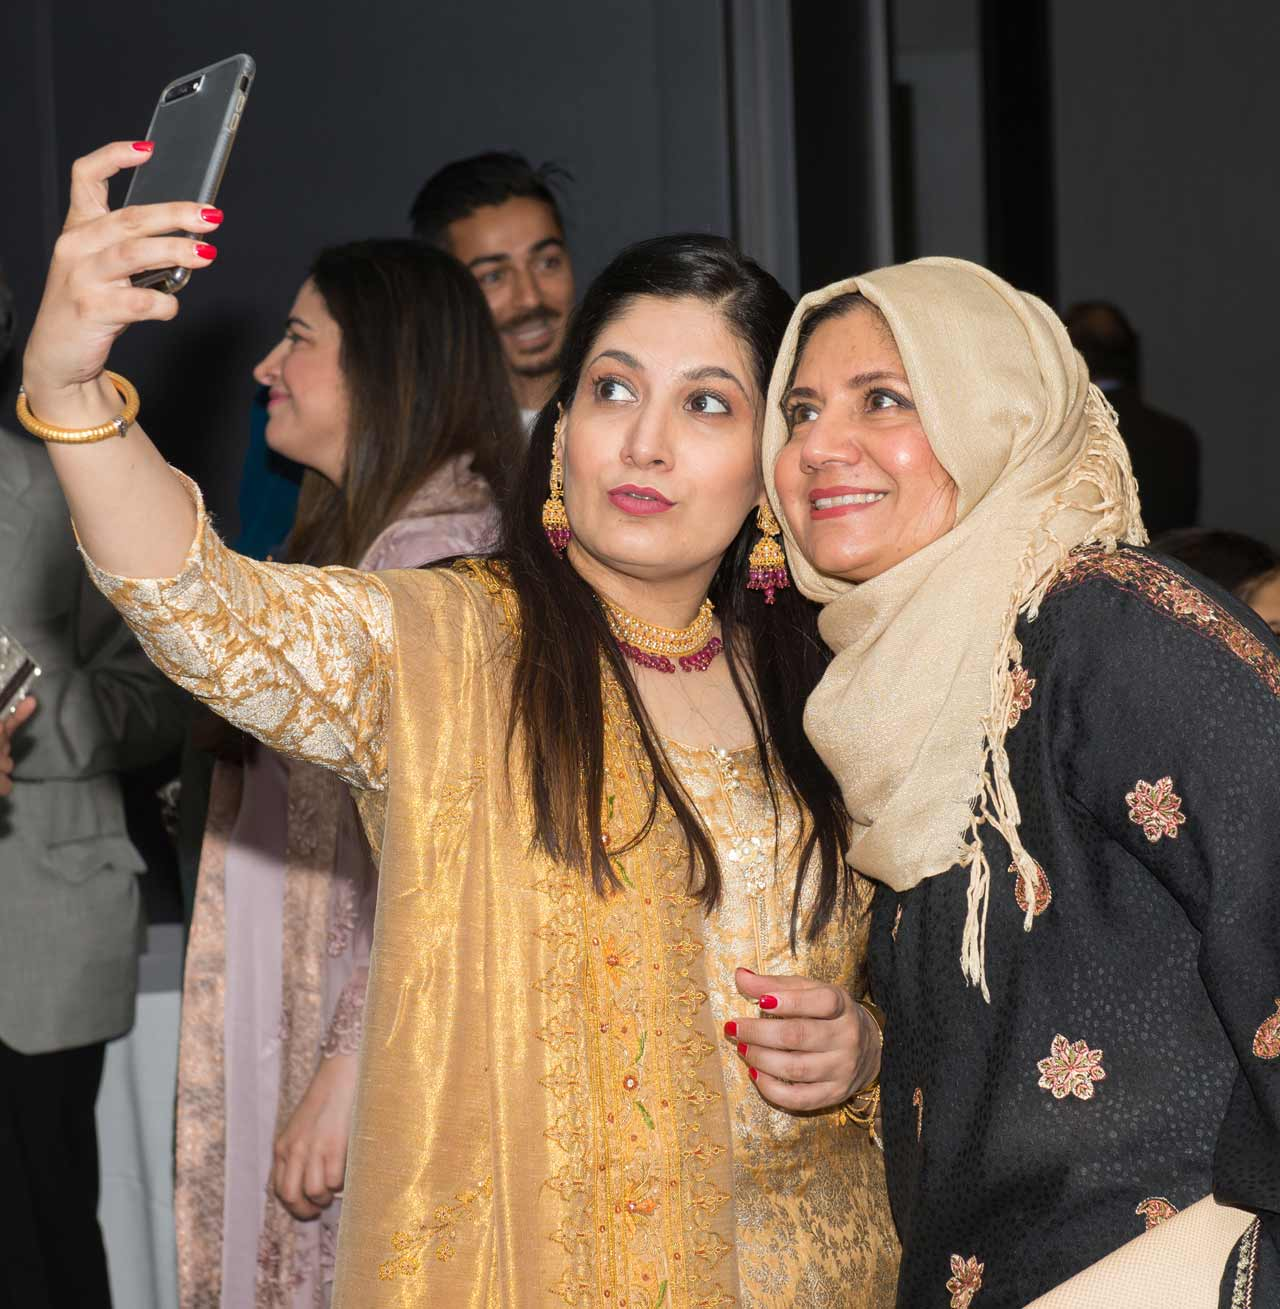 Nadia Pasha (Aramco brat) posing with her sister Tayyaba (also Shaikh Amin's daughter-in-law).